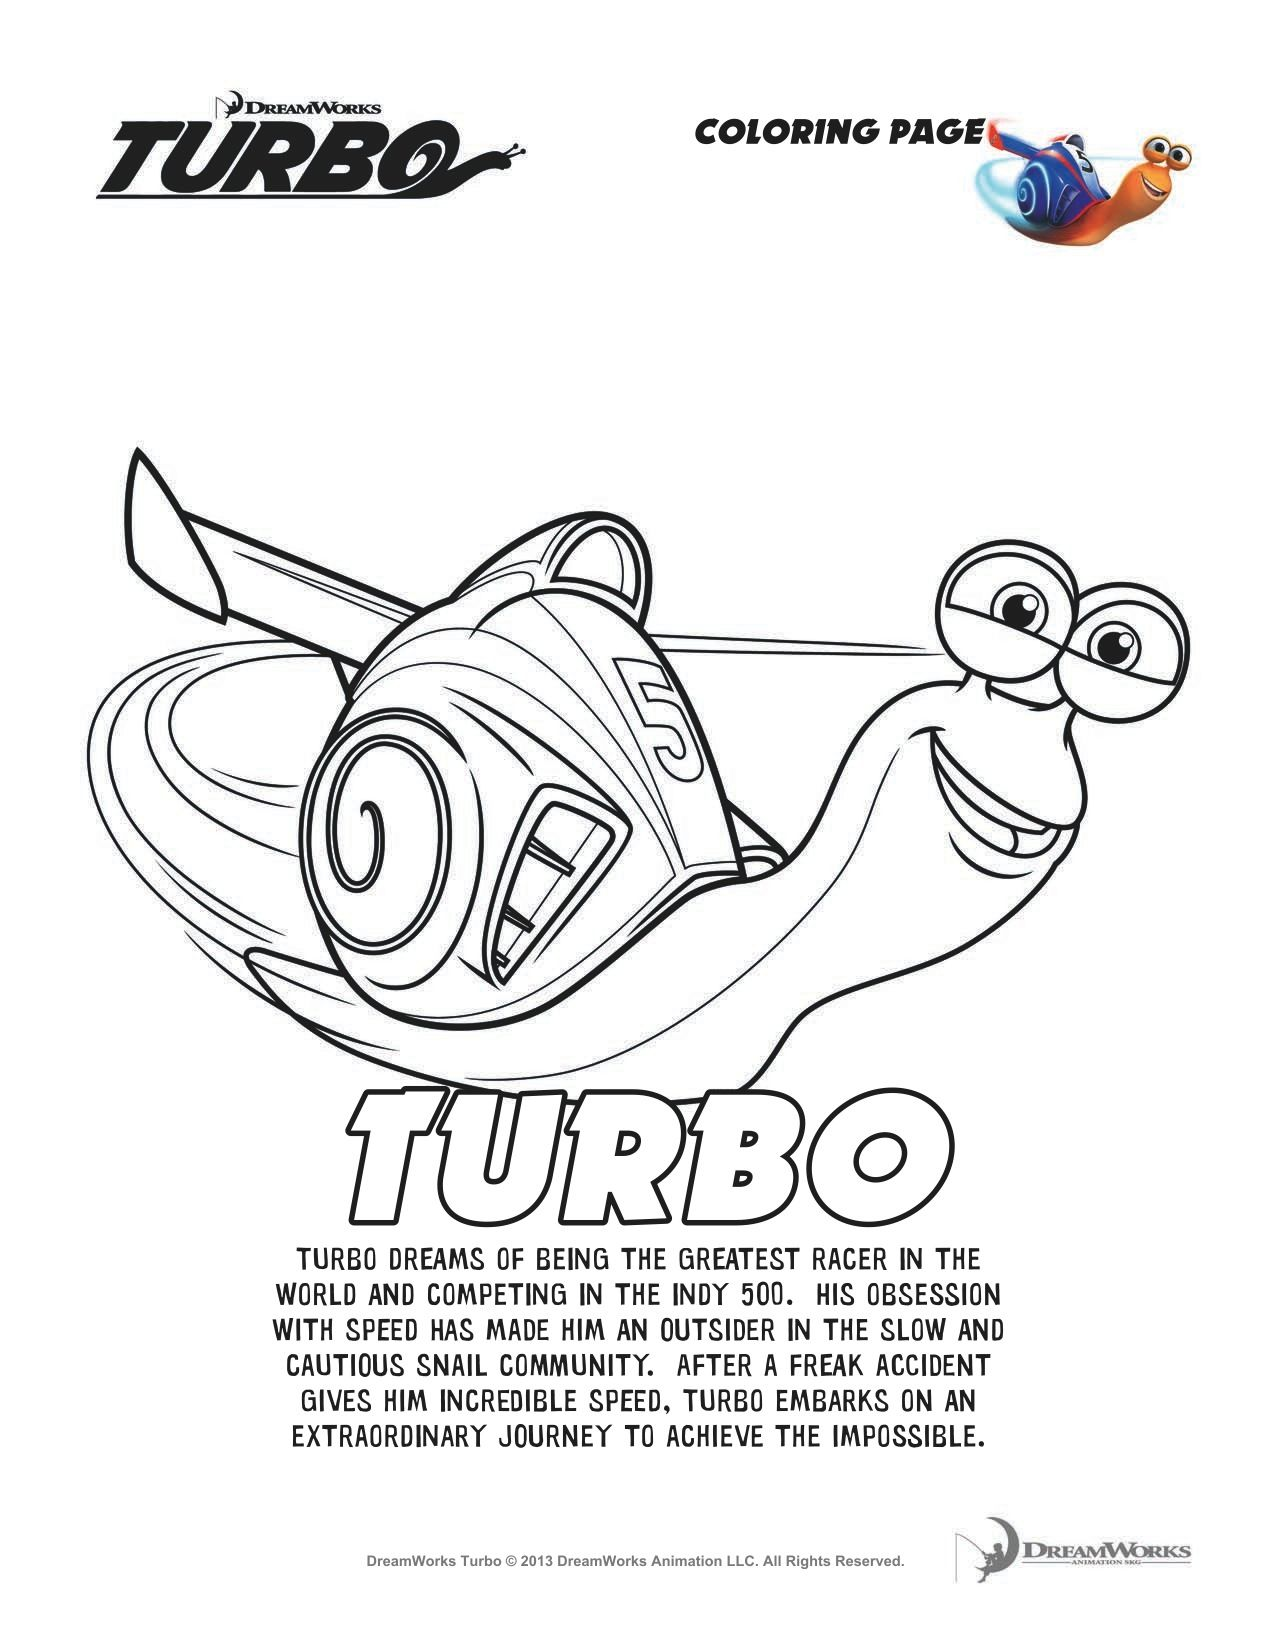 Turbo Coloring Pages and Activity Worksheets  Birthdays and